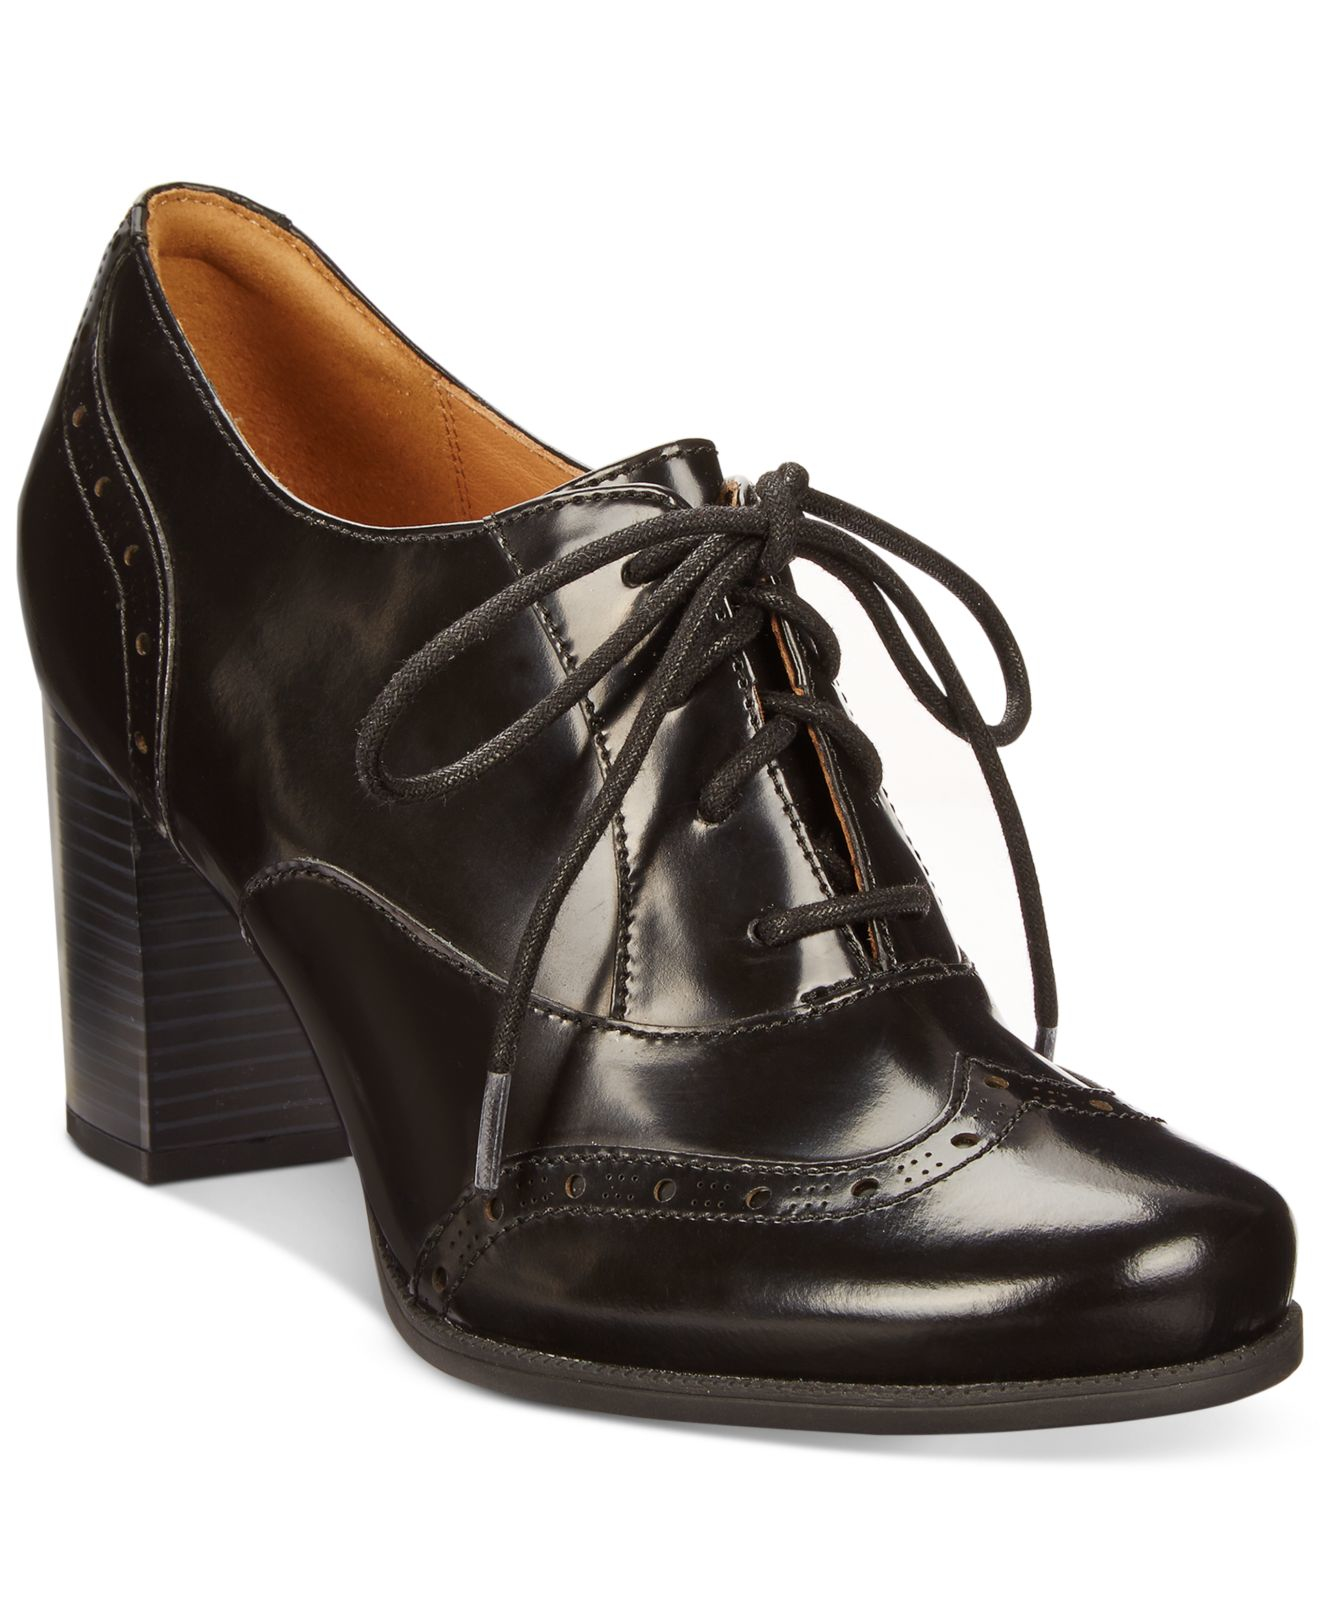 Clarks Shoes Women Oxford